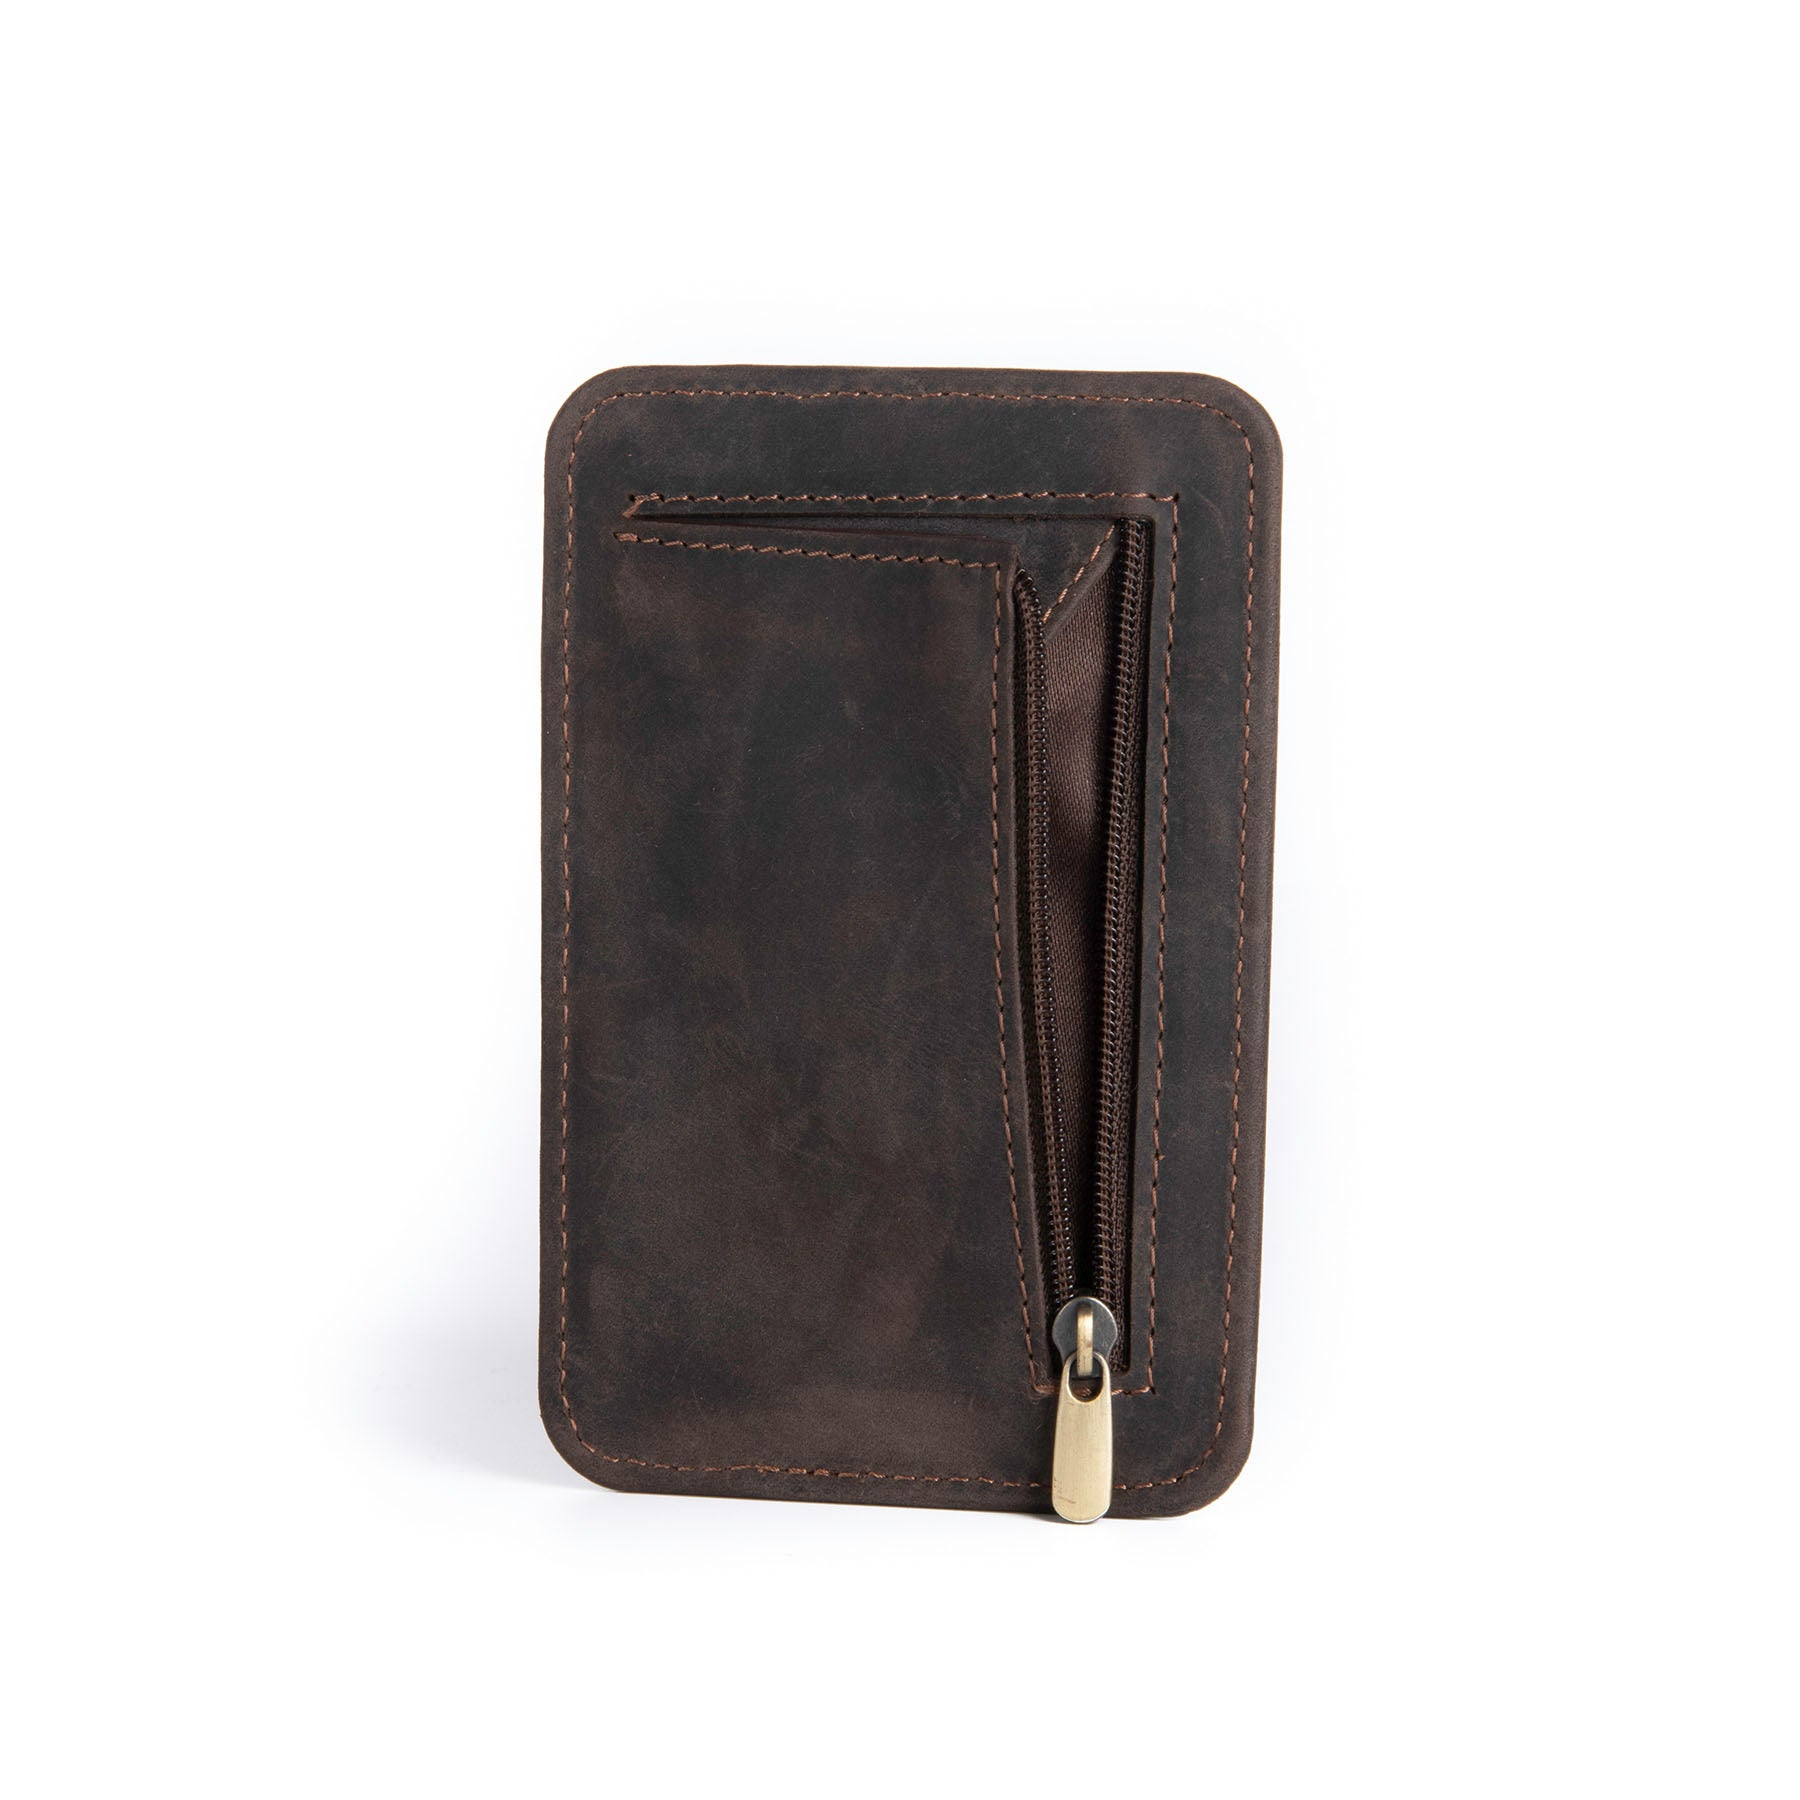 Canyon Leather Wallet - Chestnut 4